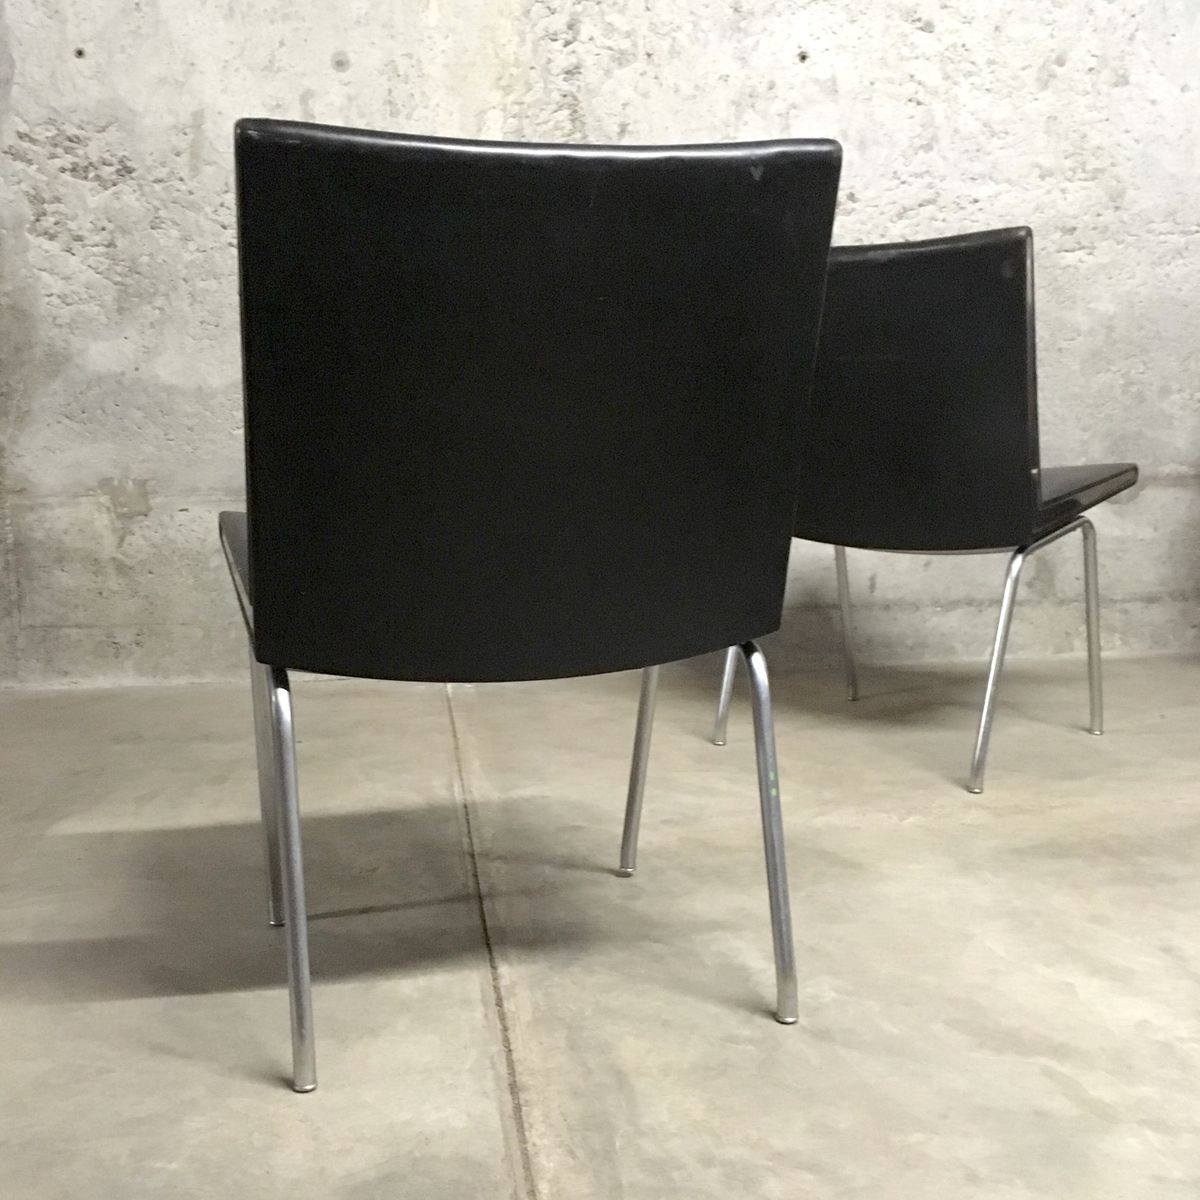 d nischer ap 40 stuhl von hans j wegner f r a p stolen 1950er bei pamono kaufen. Black Bedroom Furniture Sets. Home Design Ideas